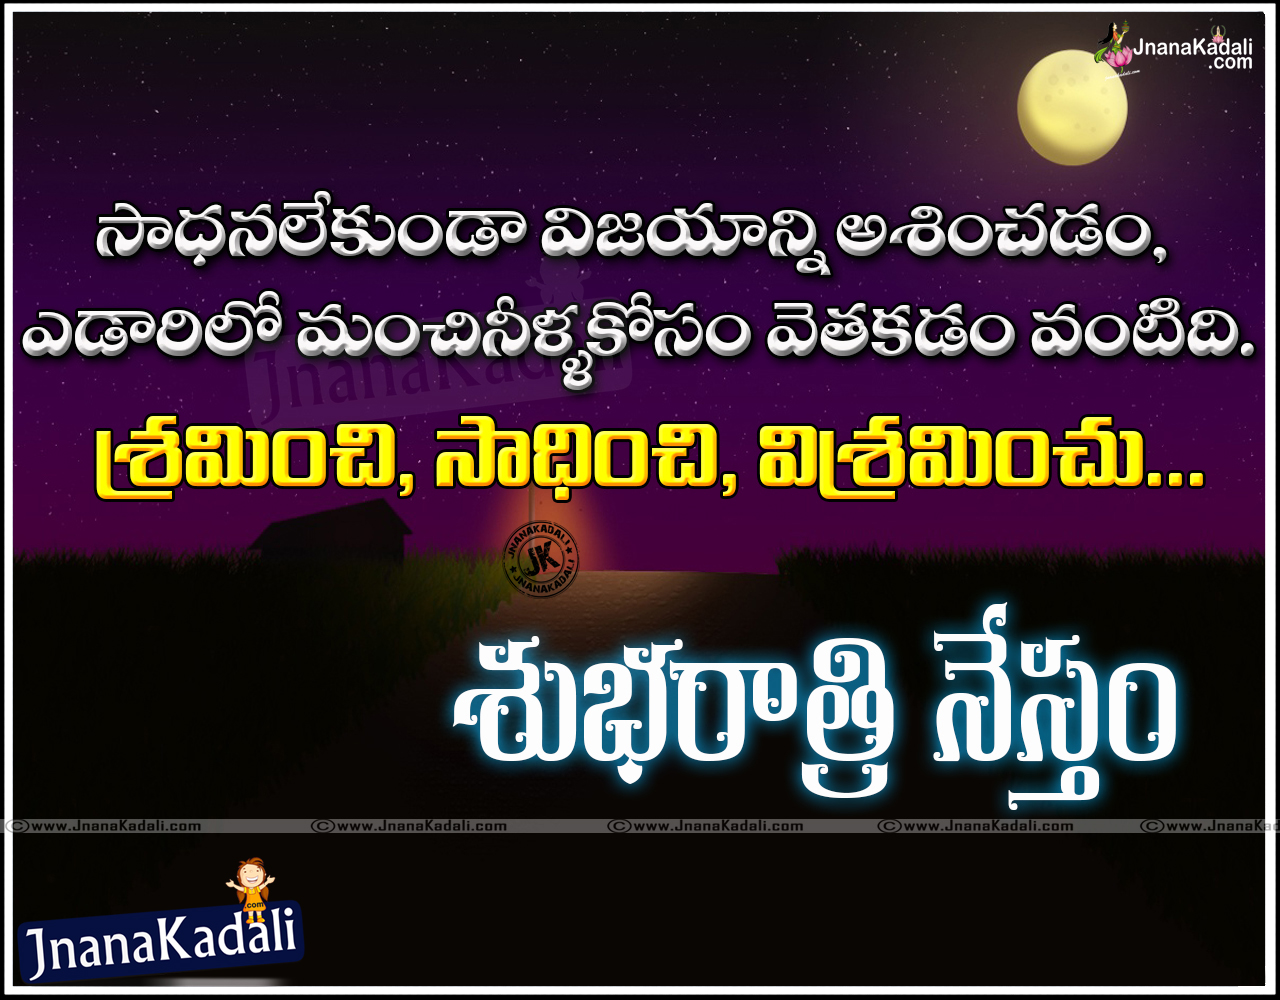 Telugu Best Good Night Quotes Greetings For Friends Jnana Kadali